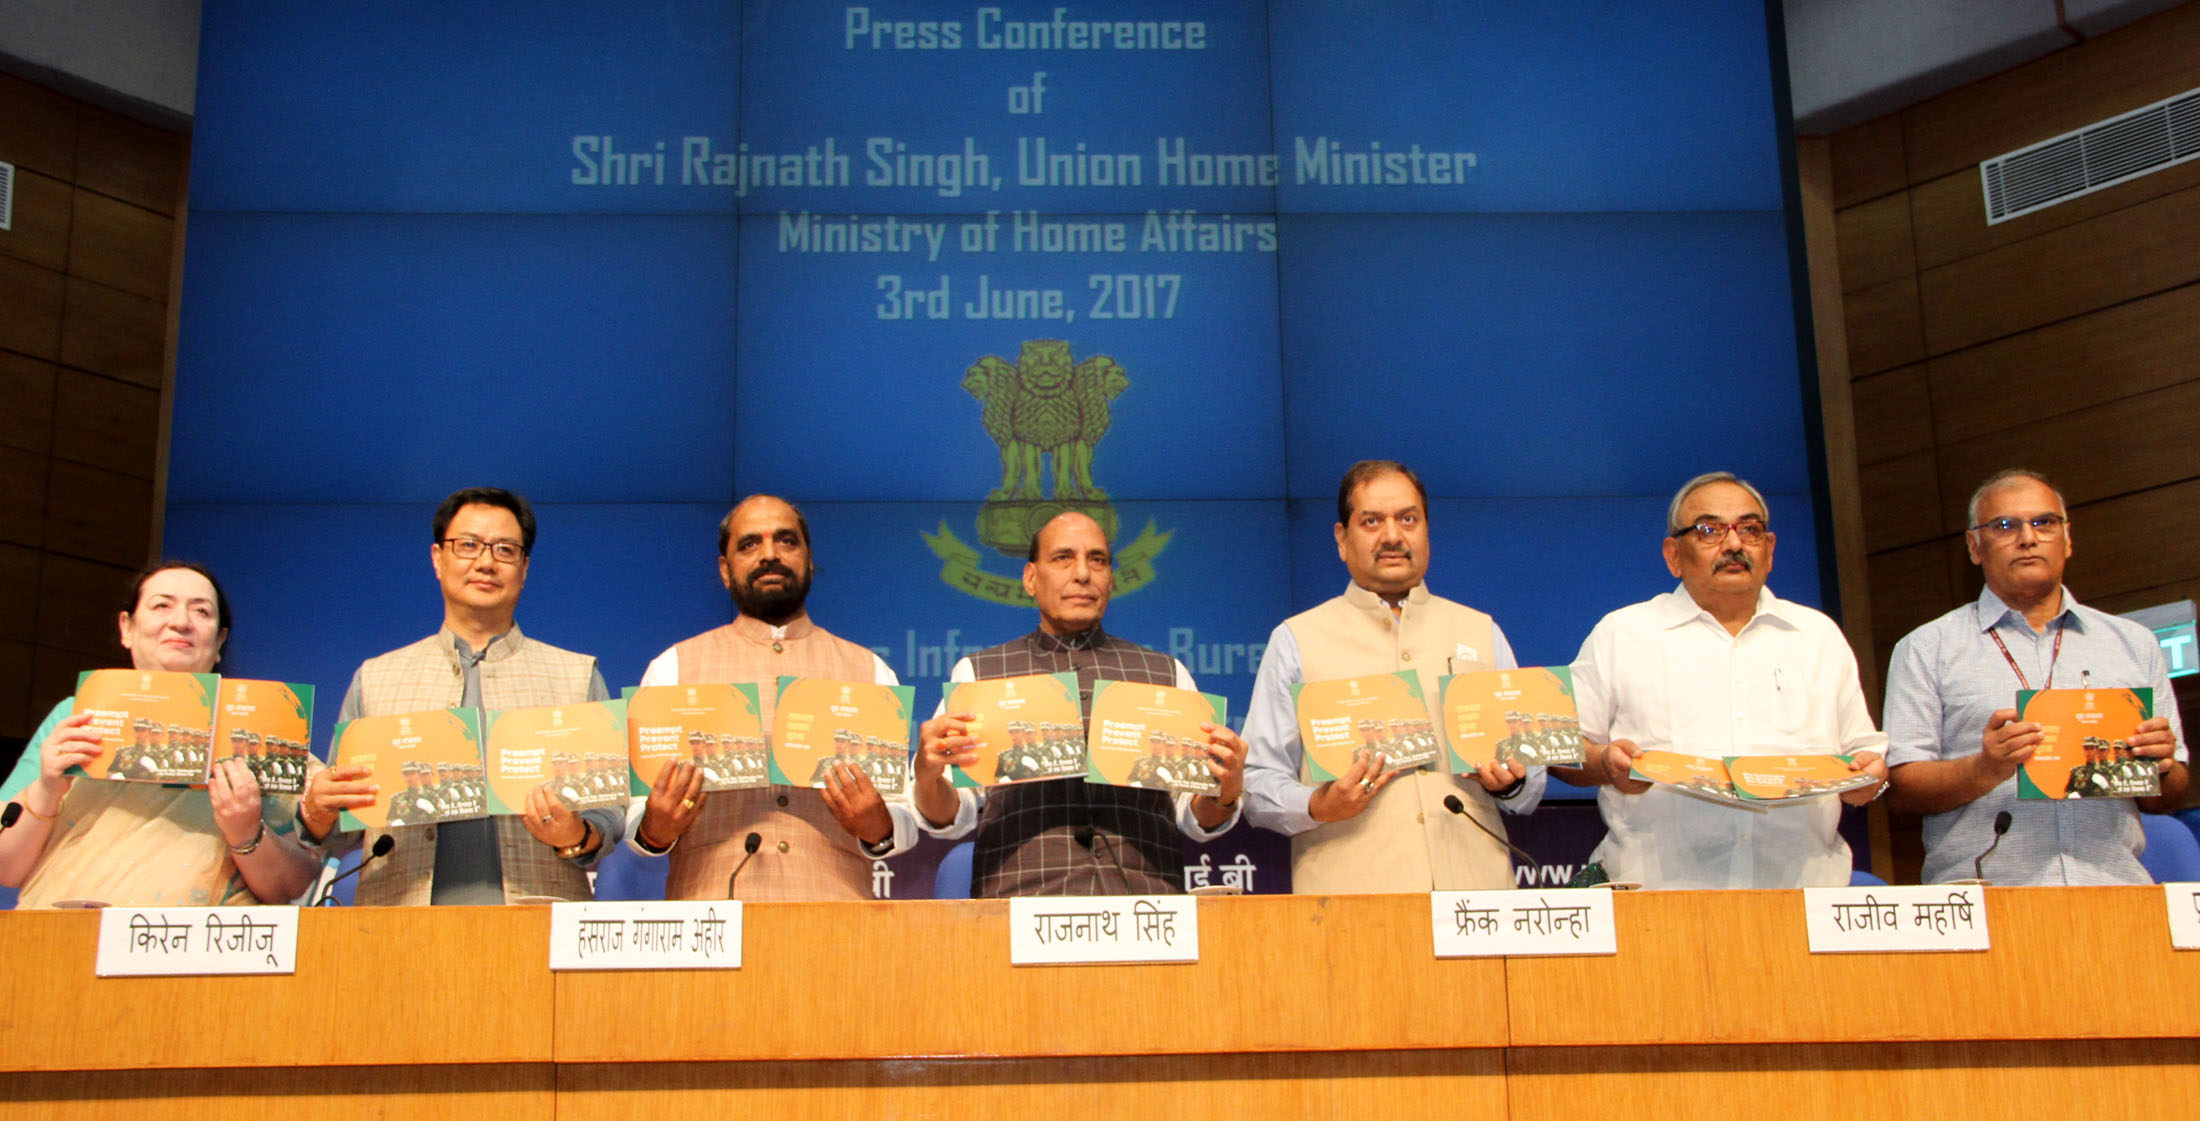 The Union Home Minister, Shri Rajnath Singh releasing a booklet at a press conference on the Achievements & Initiatives of the Ministry of Home Affairs during 3 years of NDA Government, in New Delhi on June 03, 2017.  The Ministers of State for Home Affairs, Shri Hansraj Gangaram Ahir and Shri Kiren Rijiju, the Union Home Secretary, Shri Rajiv Mehrishi and the Principal Director General (M&C), Press Information Bureau, Shri A.P. Frank Noronha are also seen.